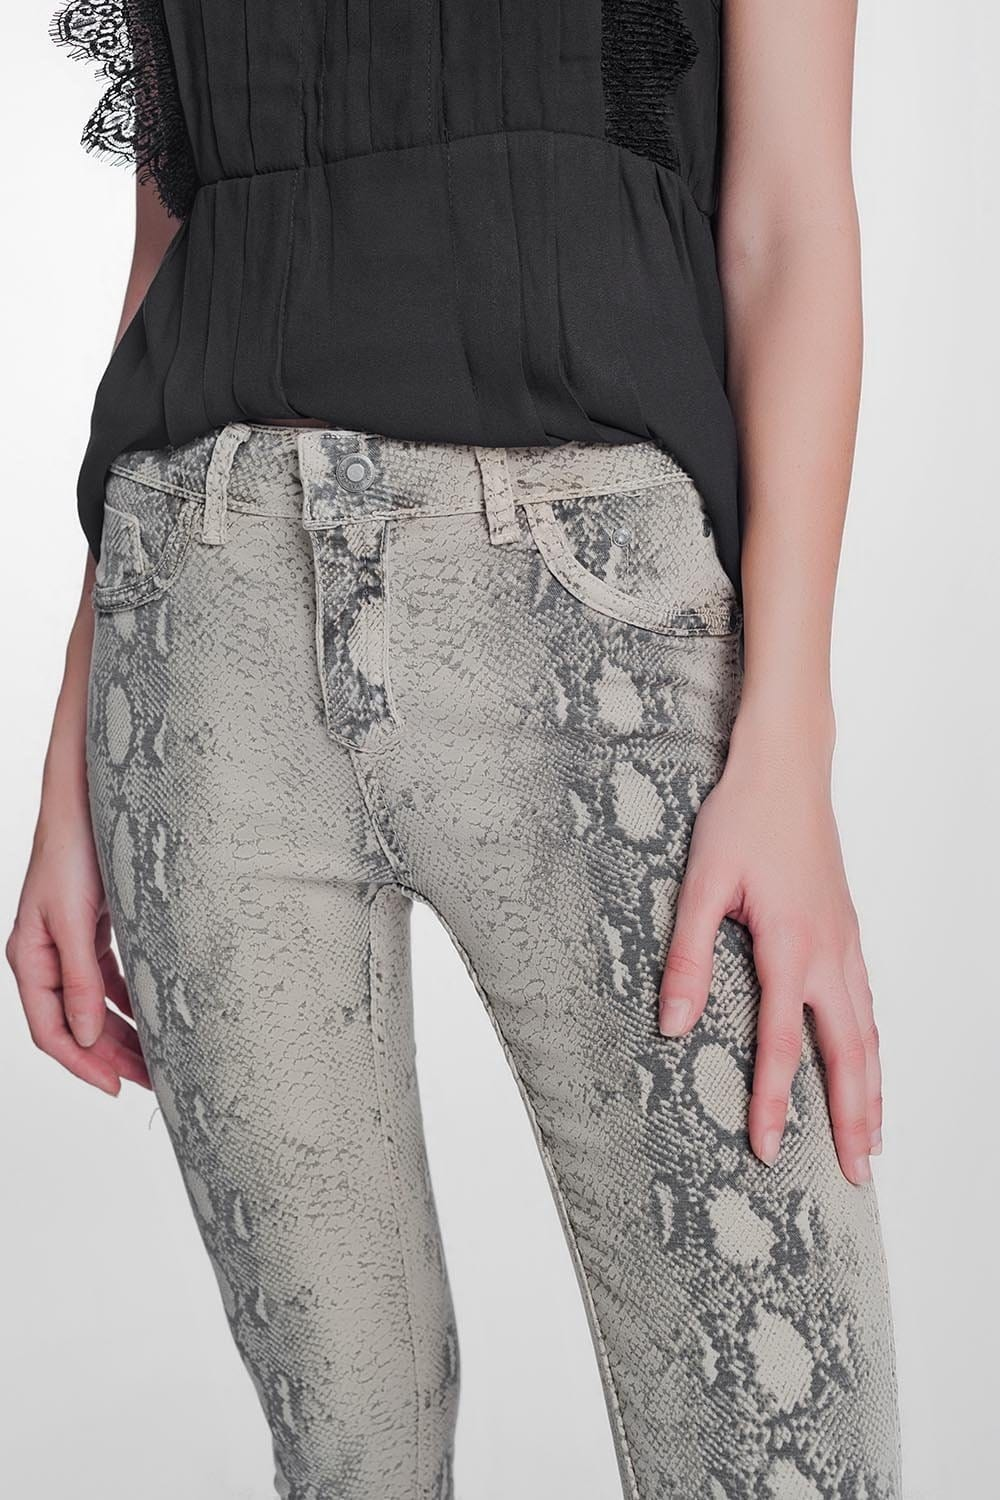 Beige Super Skinny Reversible Pants with Snake Print - Himelhoch's